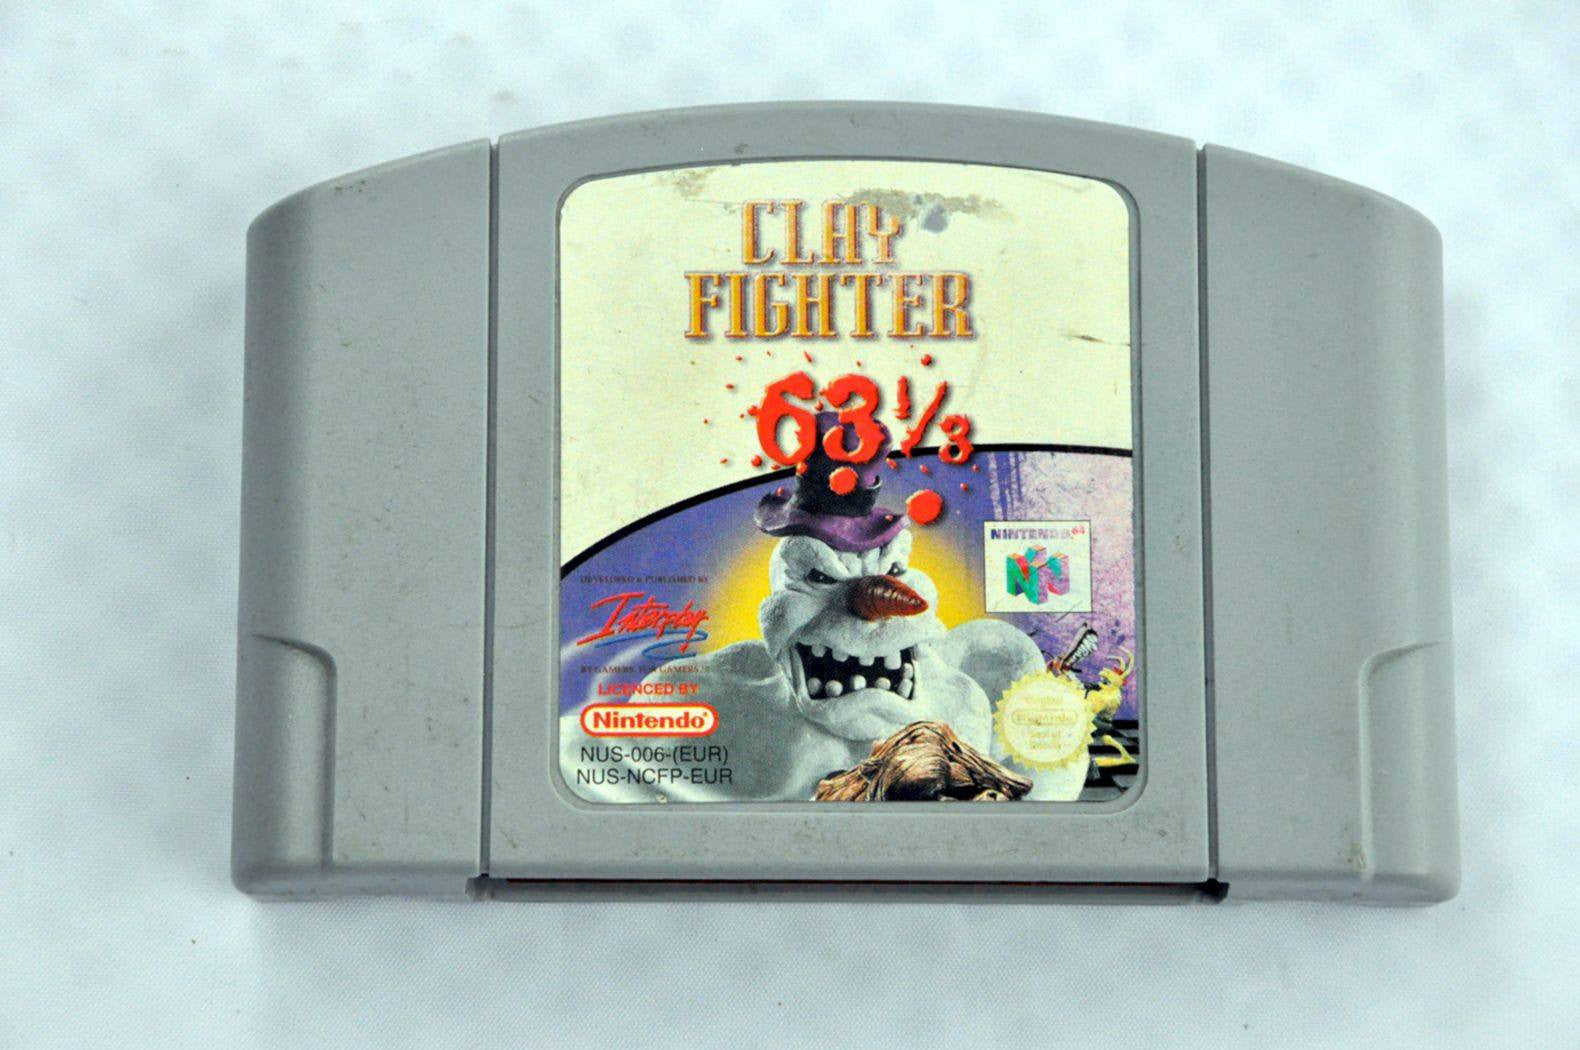 Game - Game | Nintendo 64 N64 | Clay Fighter 63 1/3